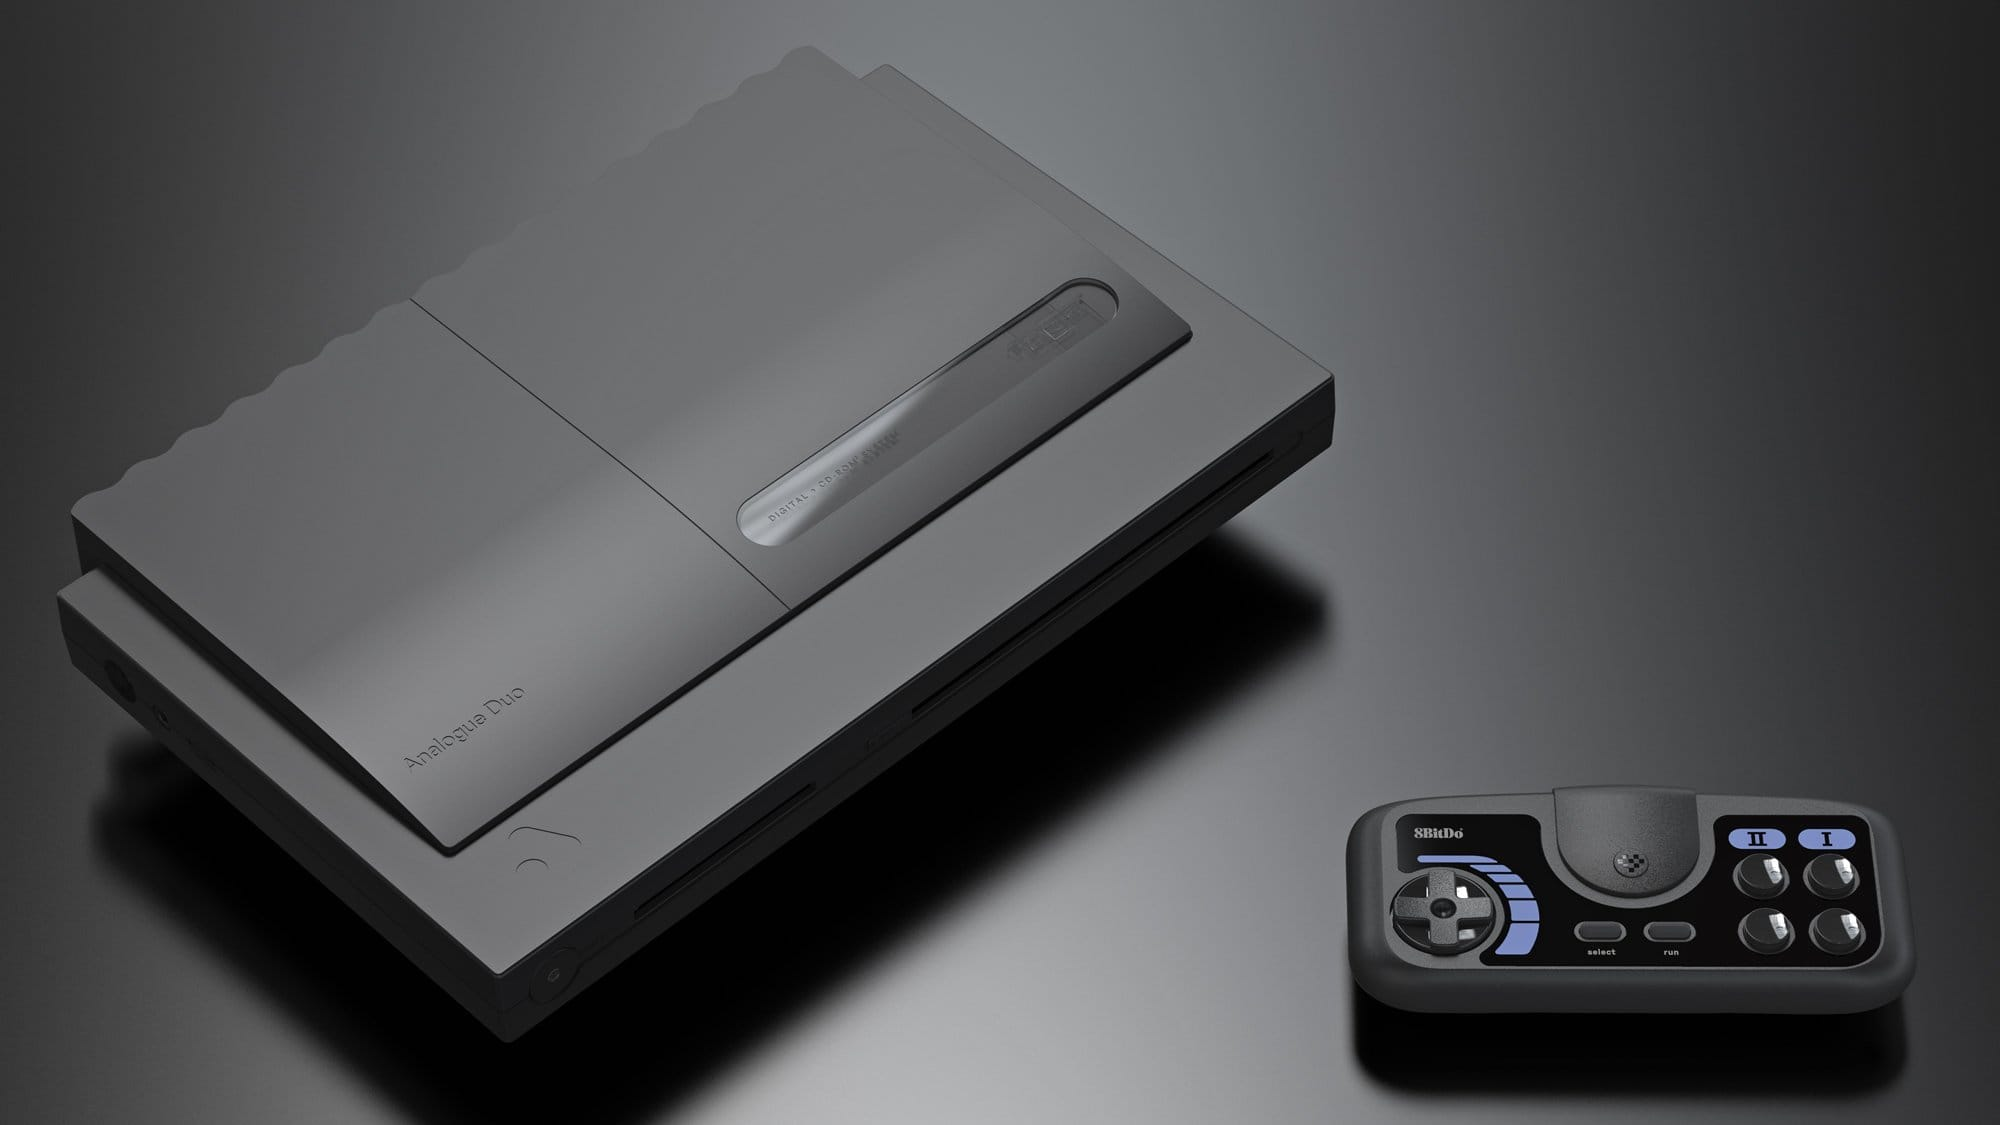 Analogue Duo all-in-one video game system works with nearly every game format